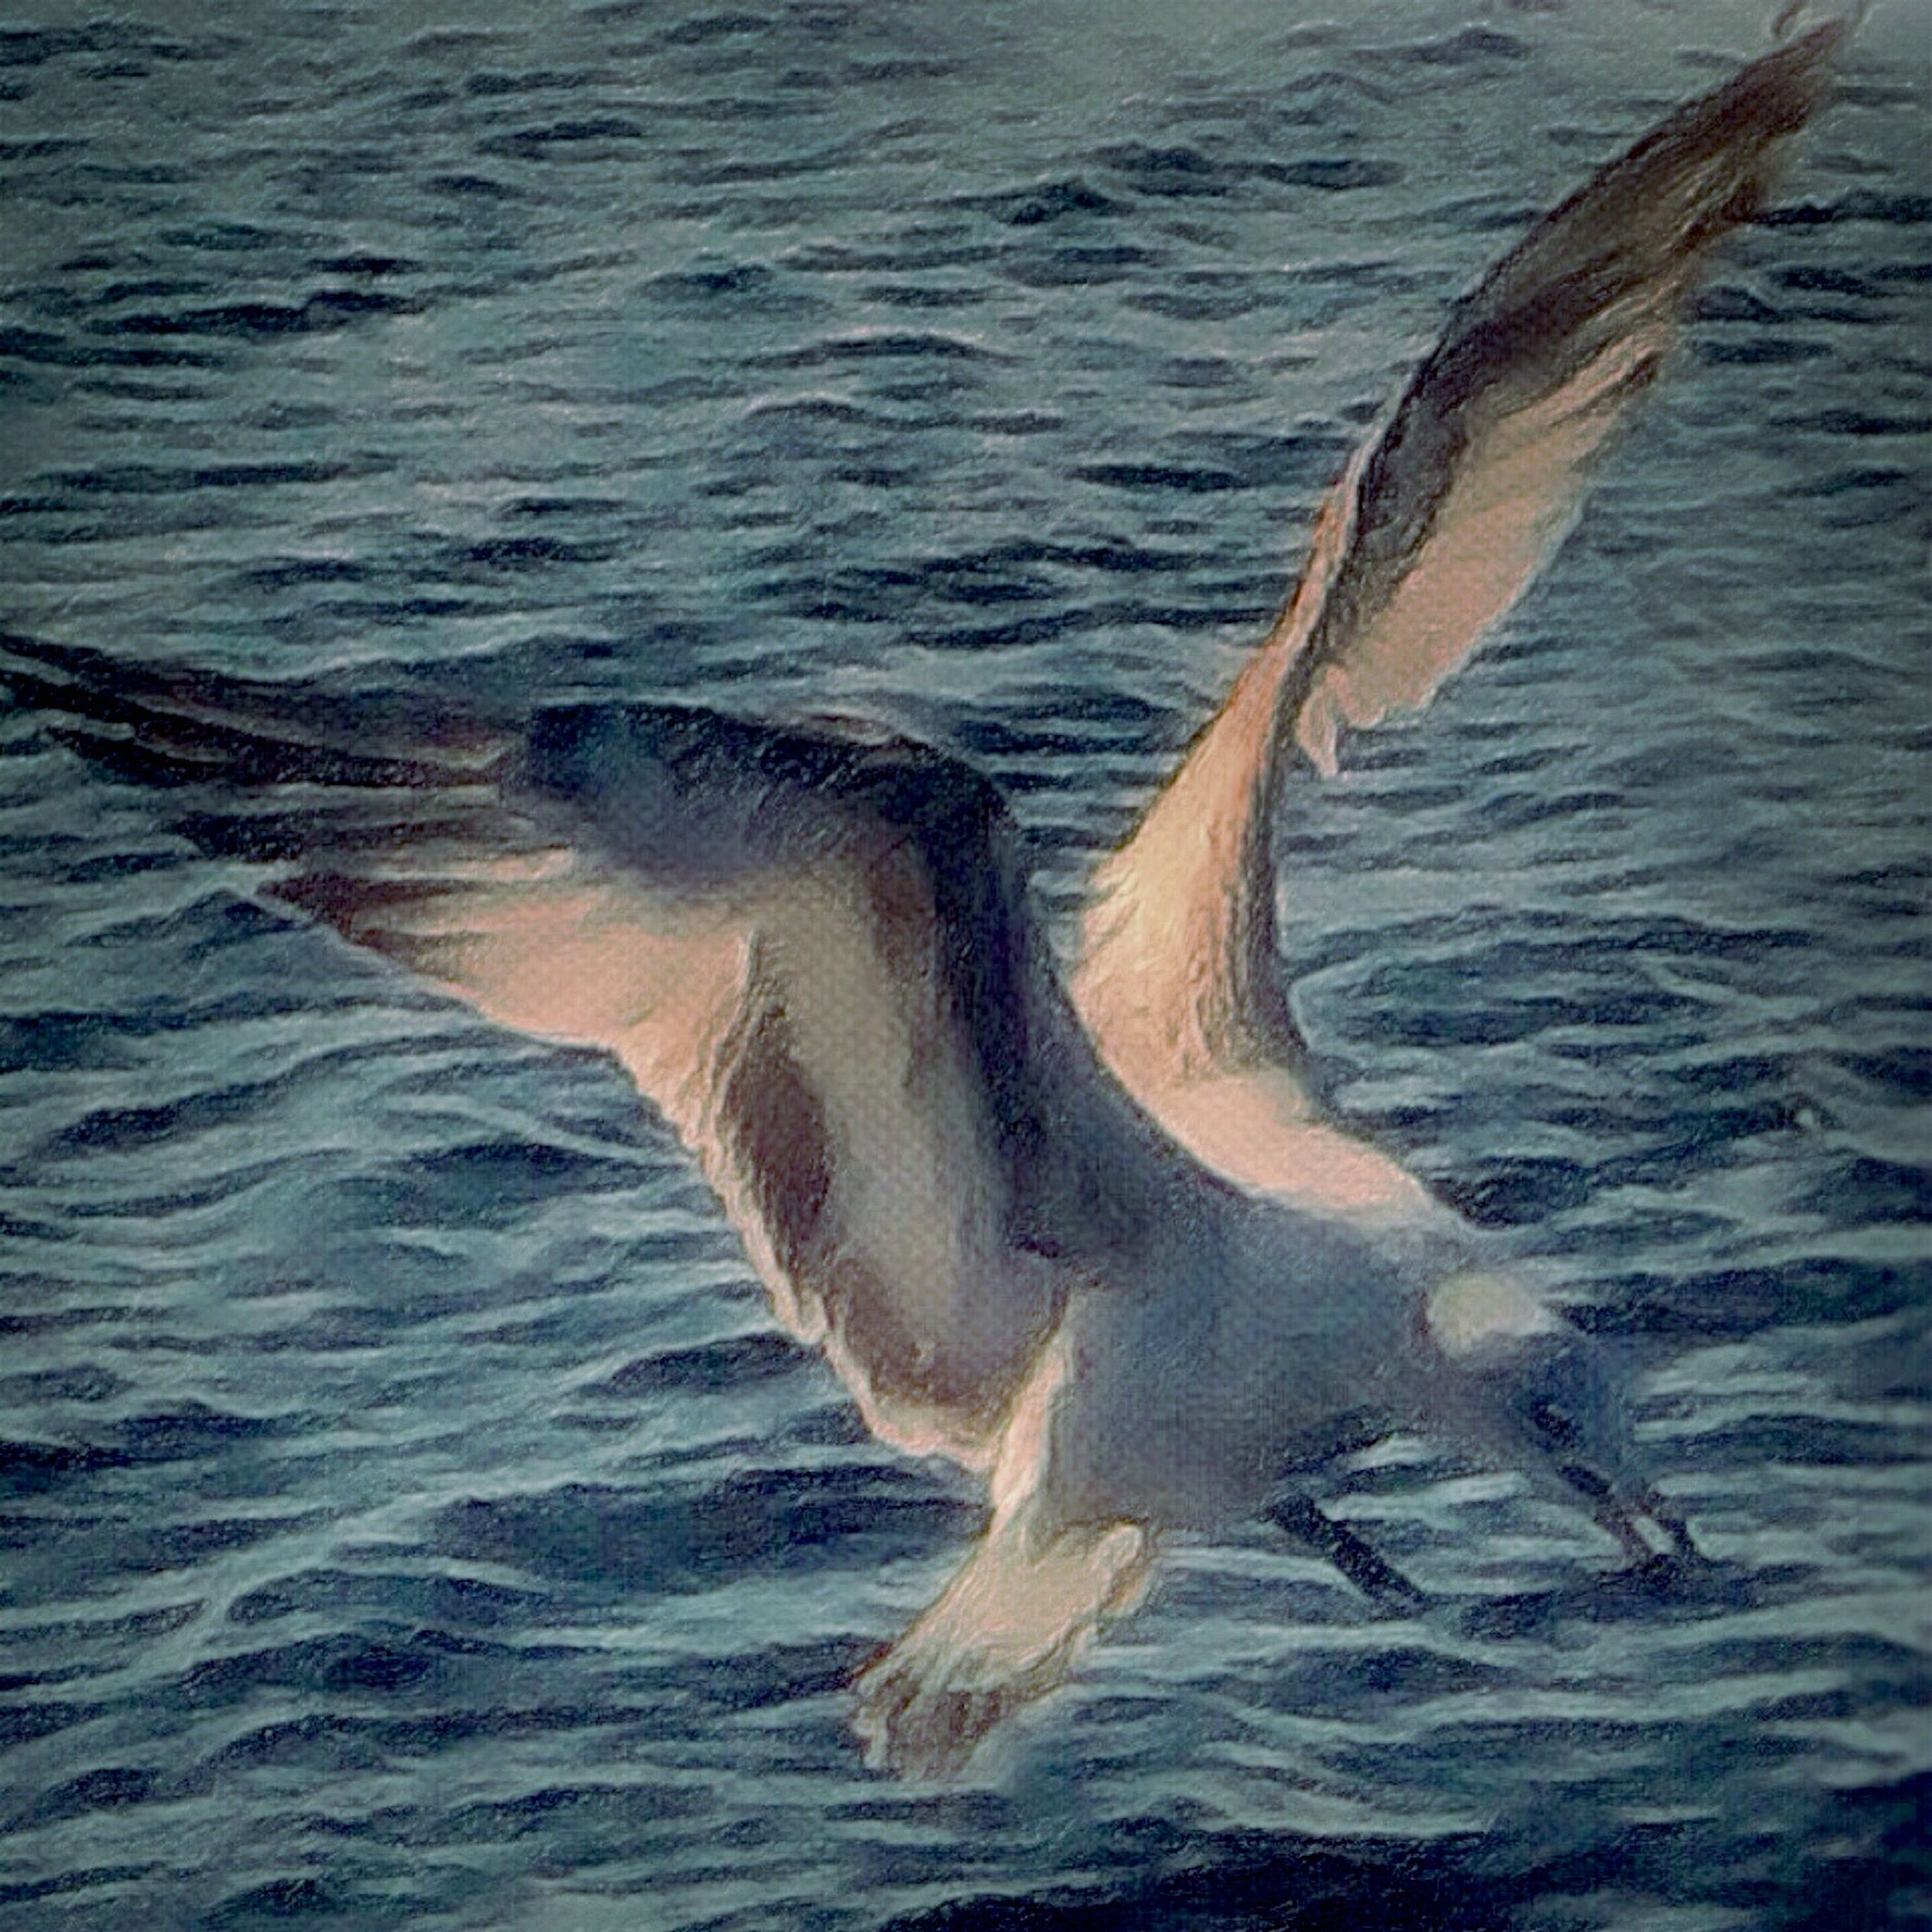 animal themes, animals in the wild, water, wildlife, one animal, bird, sea, spread wings, waterfront, rippled, swimming, sea life, nature, aquatic mammal, fish, motion, beauty in nature, seagull, flying, dolphin